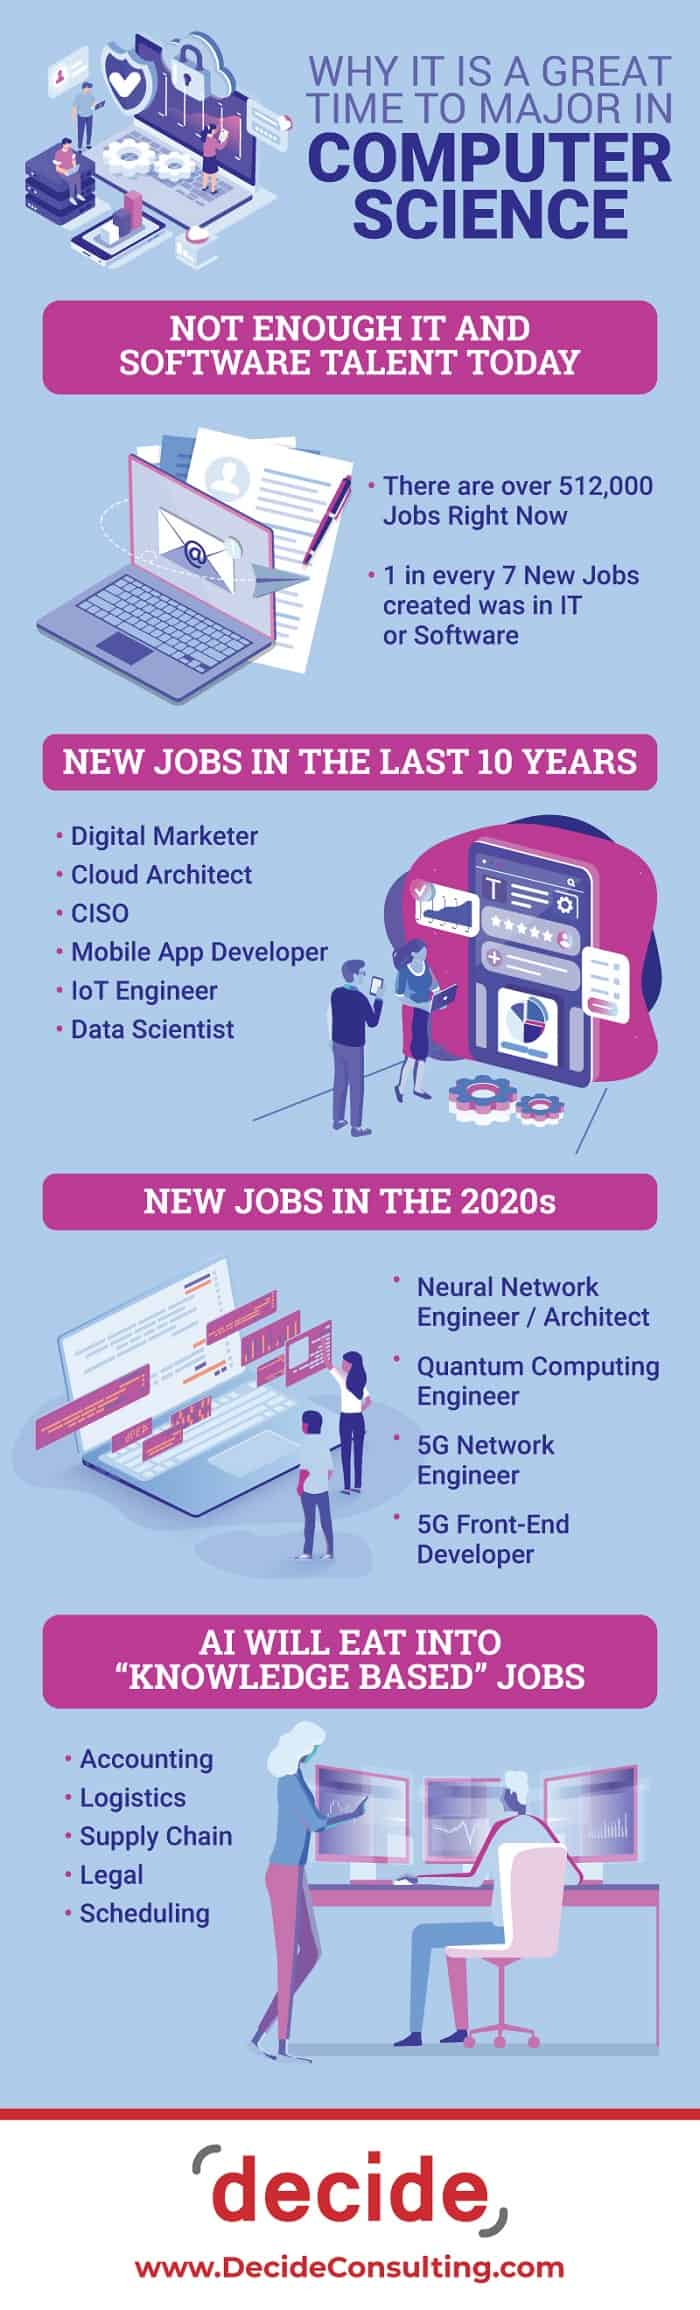 Infographic Why it is a Great Time to Major in Computer Science